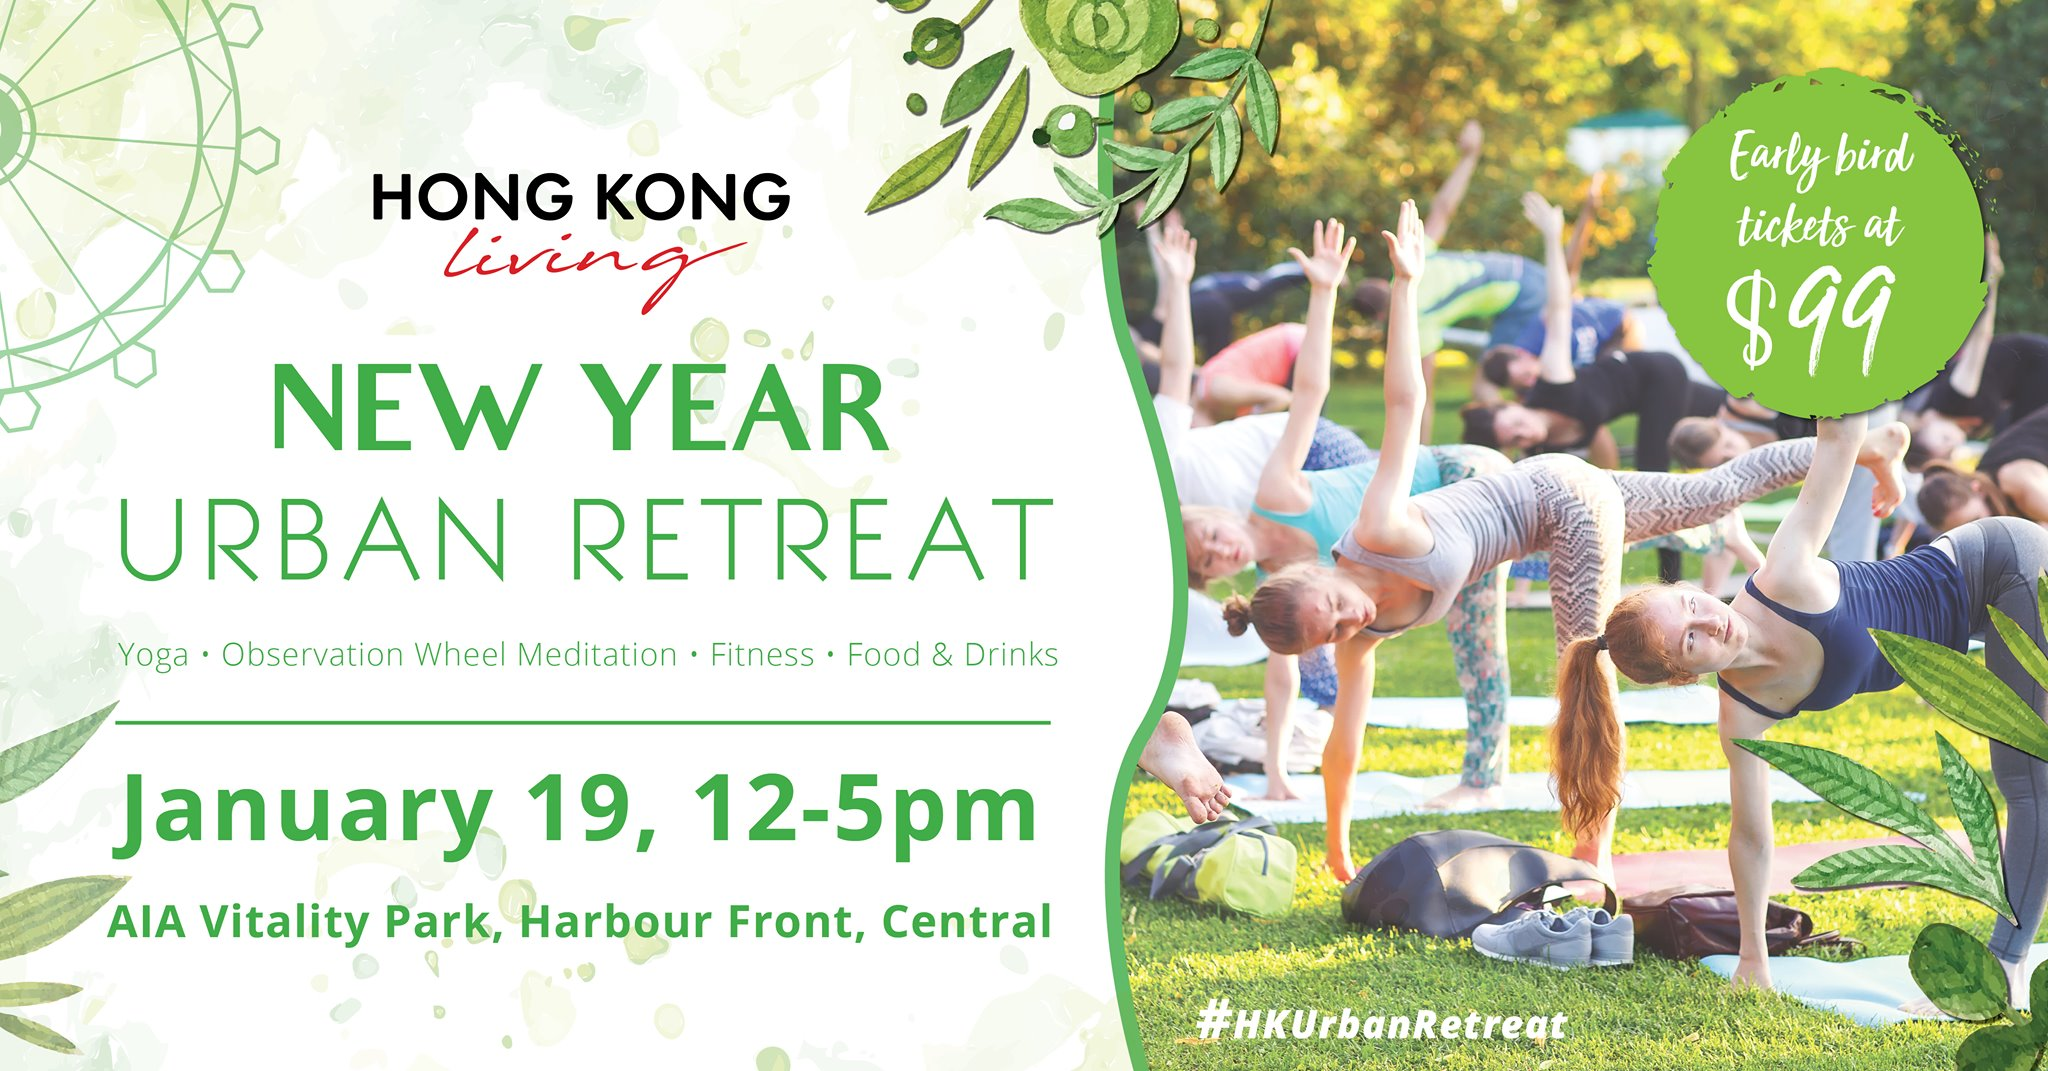 New Year Urban Retreat Hong Kong 2020